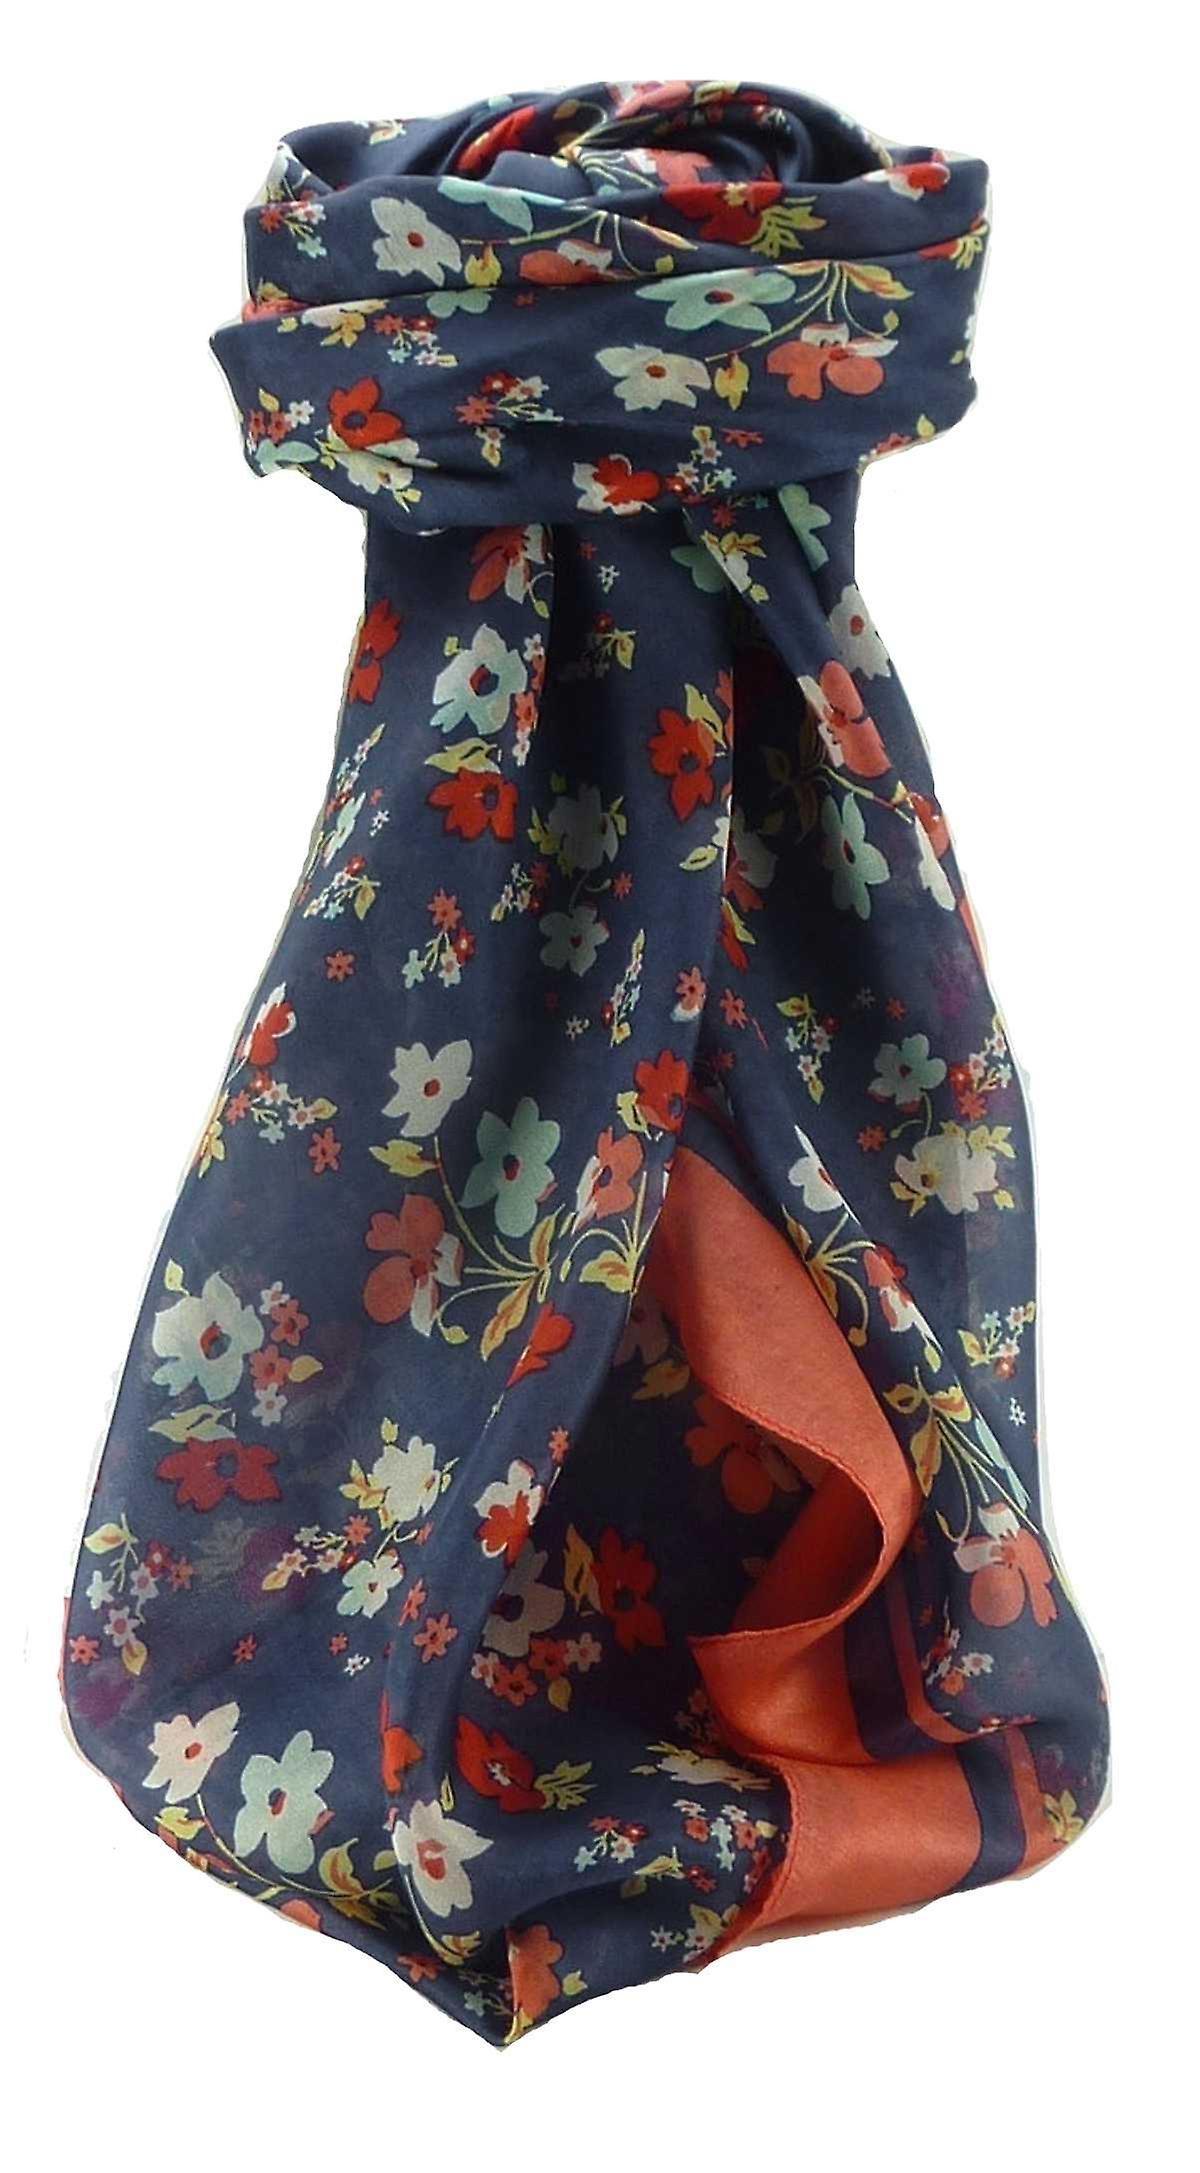 Mulberry Silk Contemporary Square Scarf Floral F209 by Pashmina & Silk